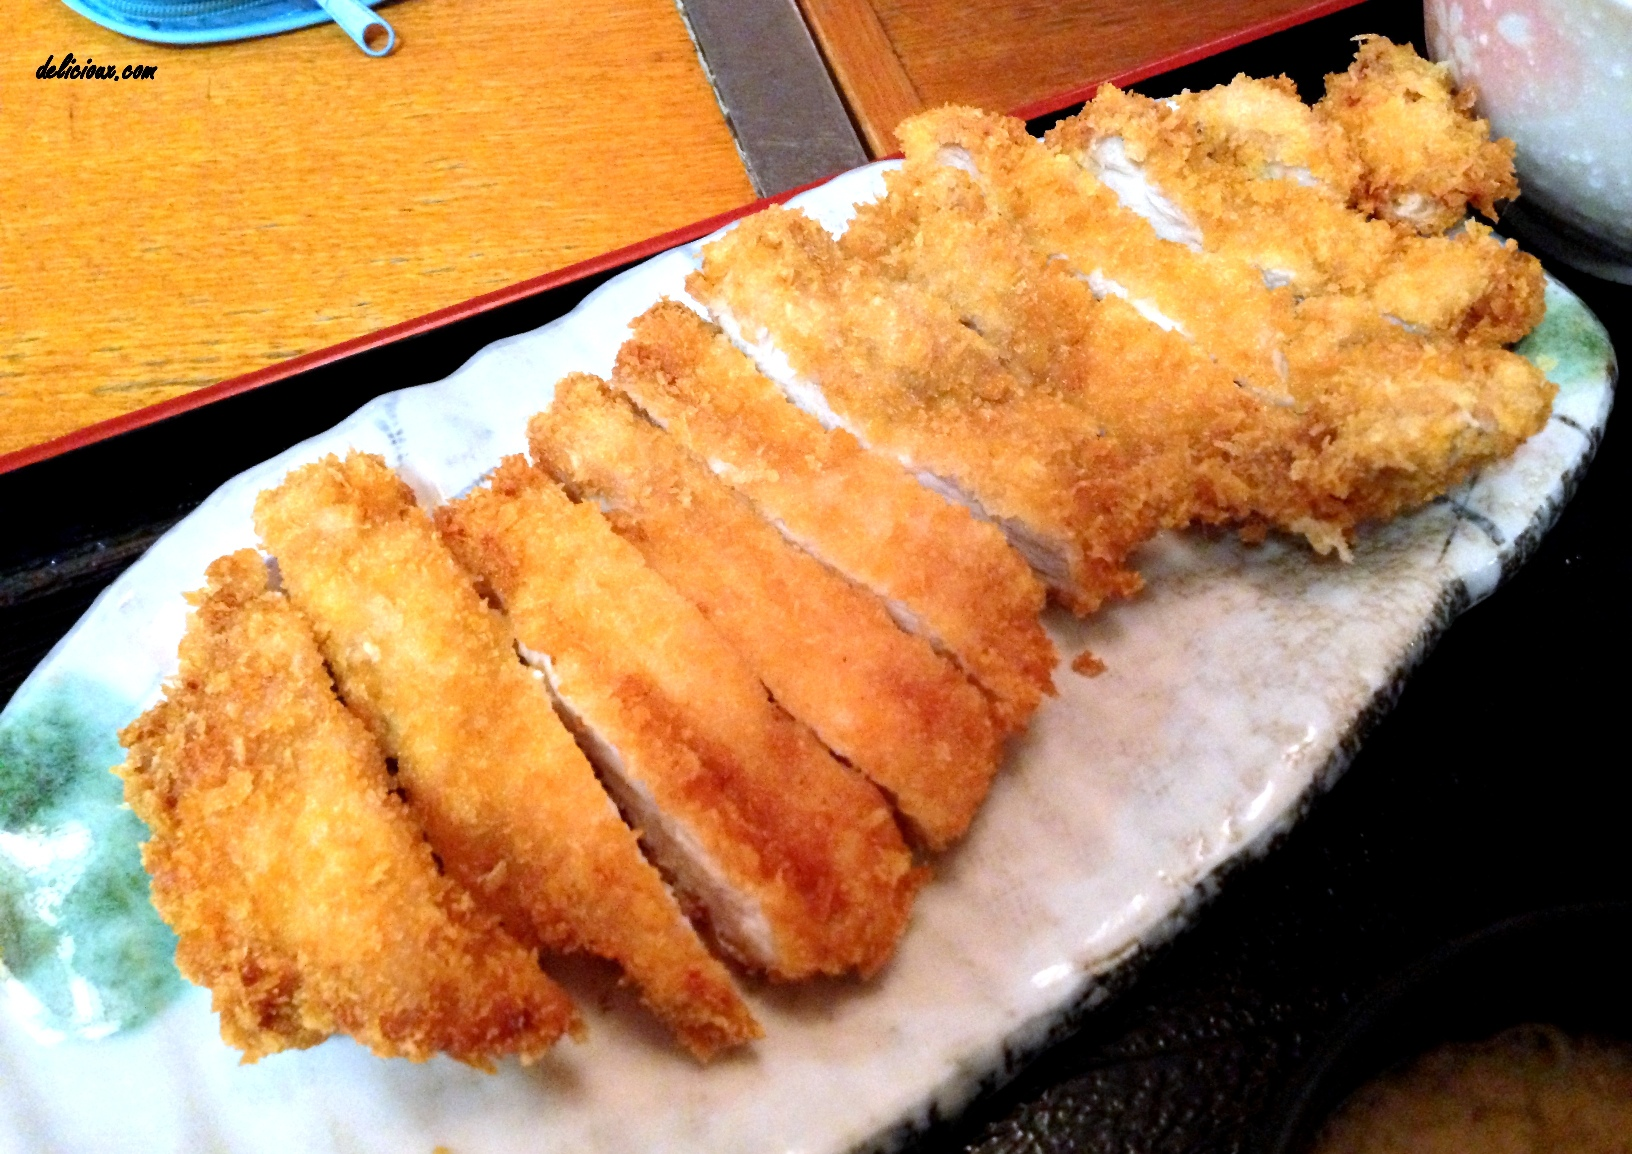 ordered the Chicken Katsu set and it's huge! The deep fried chicken ...